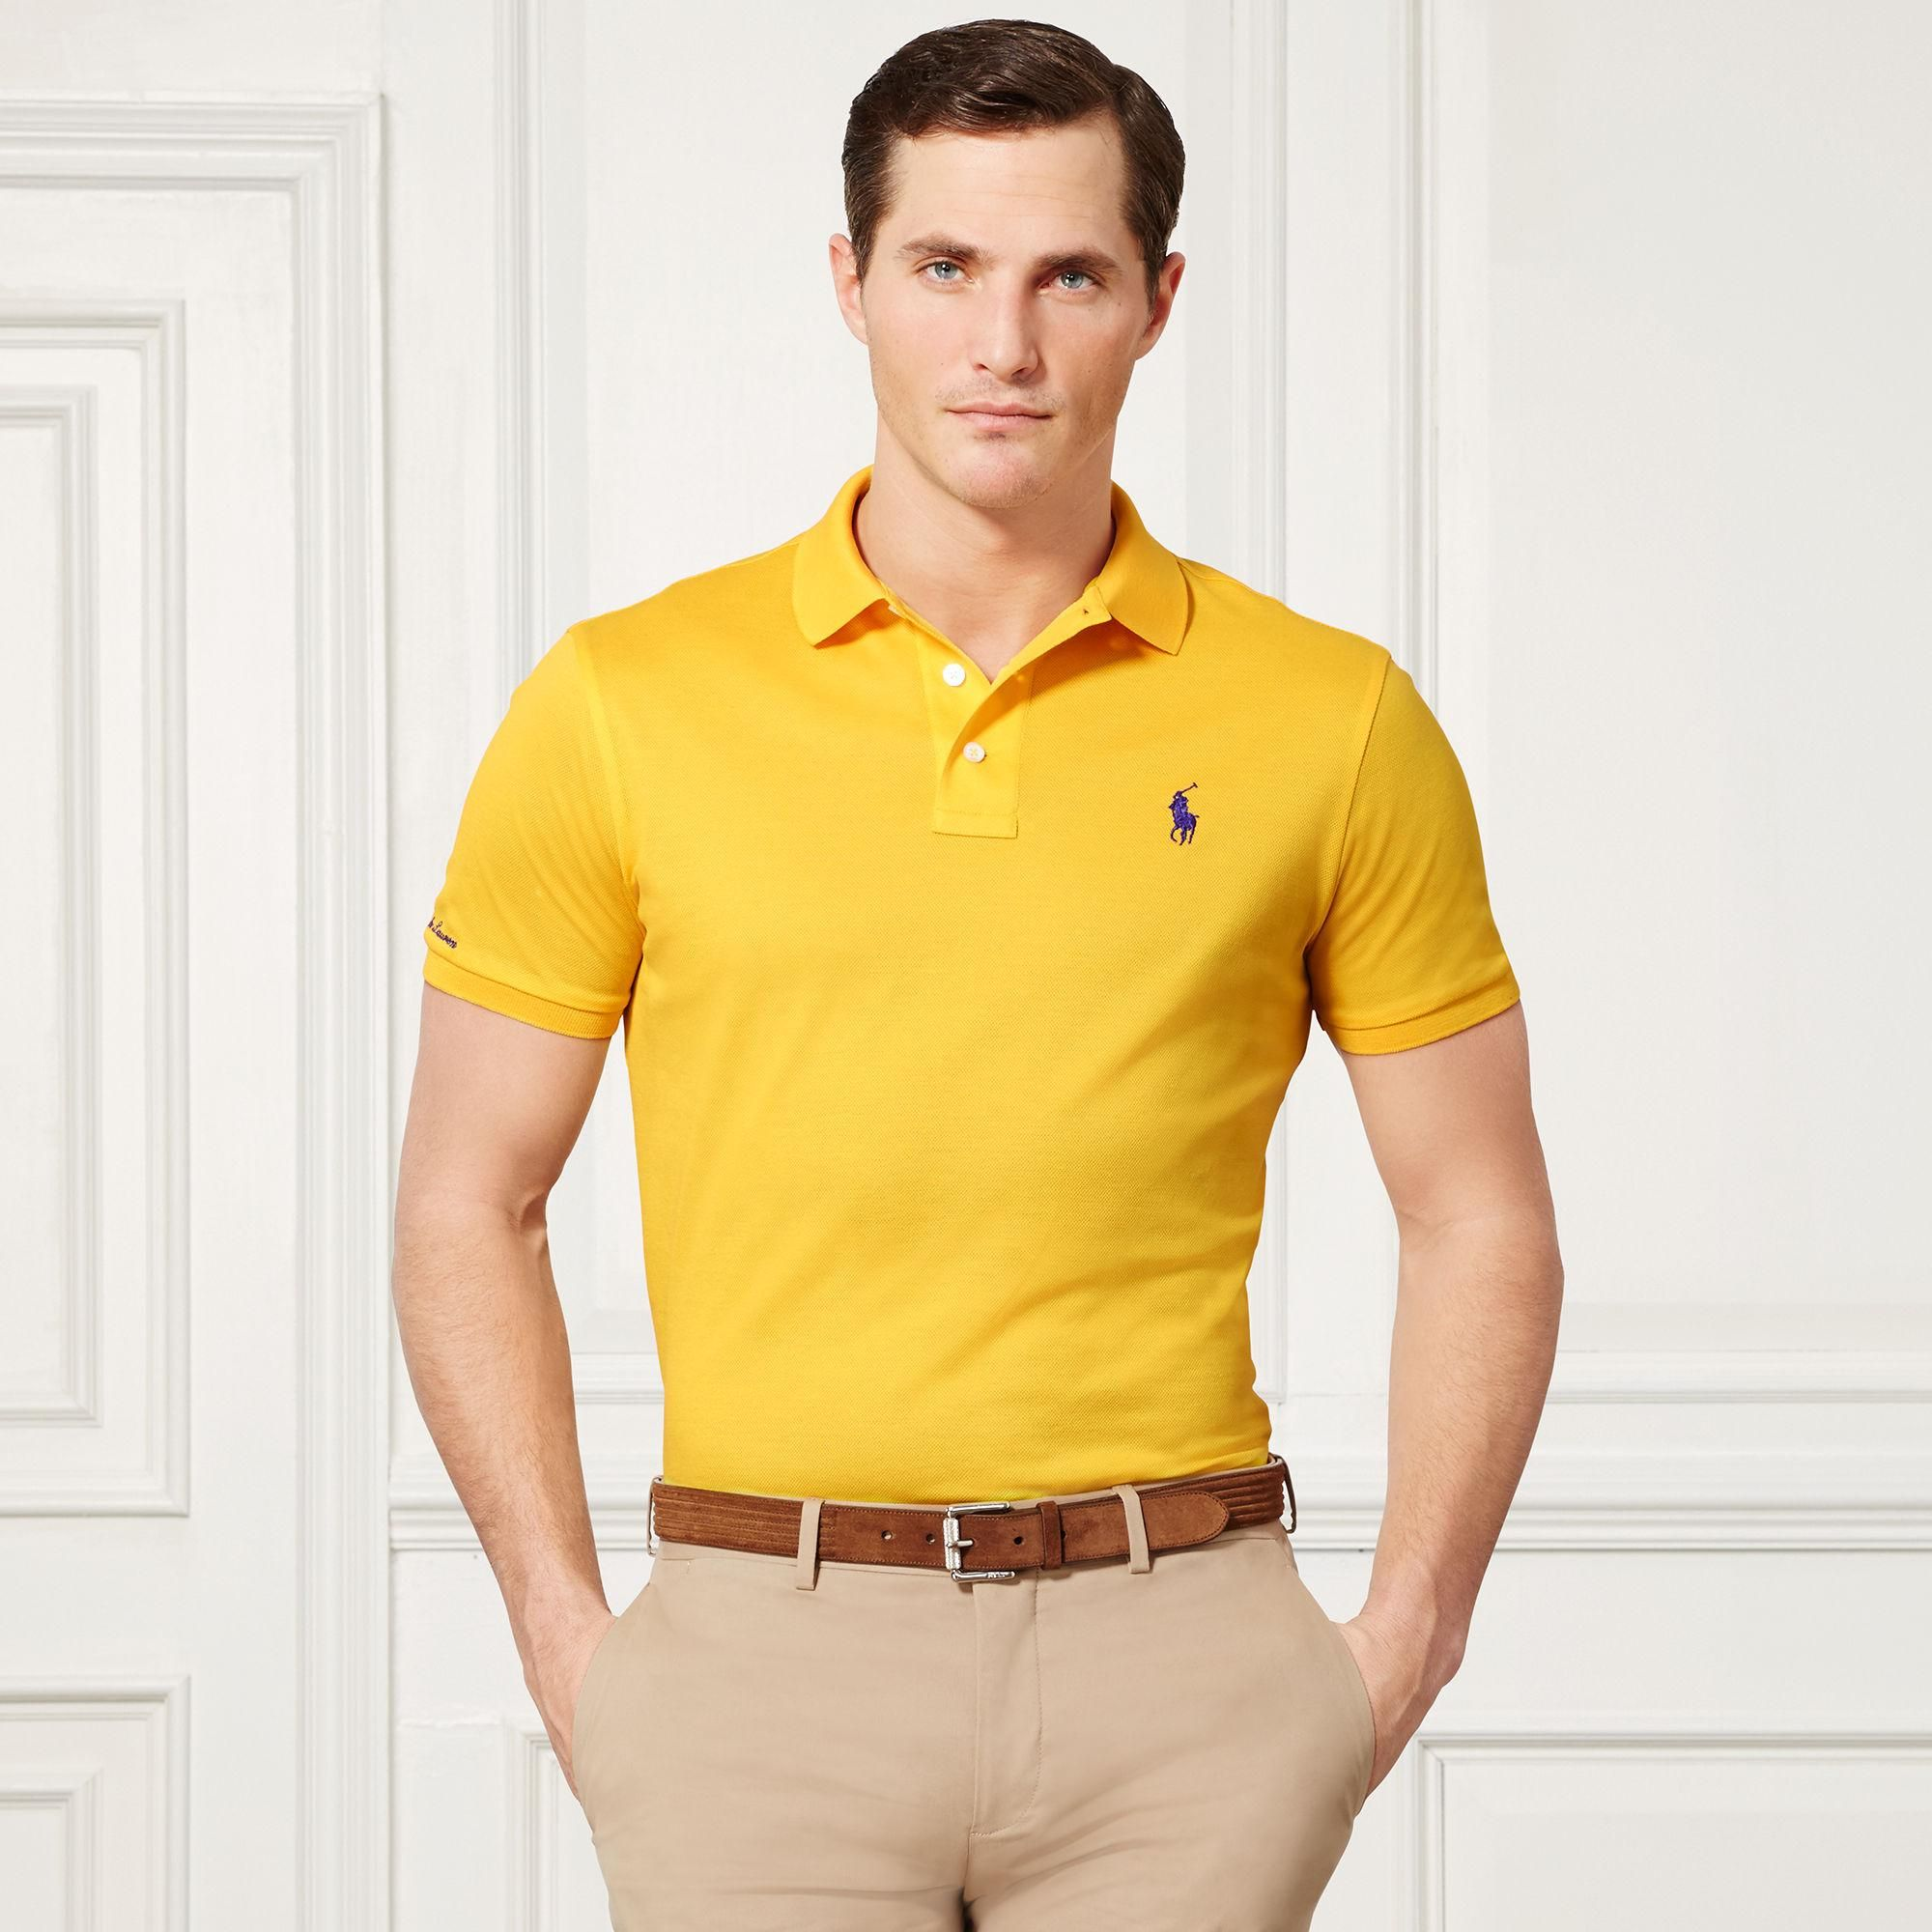 Men 39 s yellow custom fit piqu polo shirt polo shirts and for Man in polo shirt